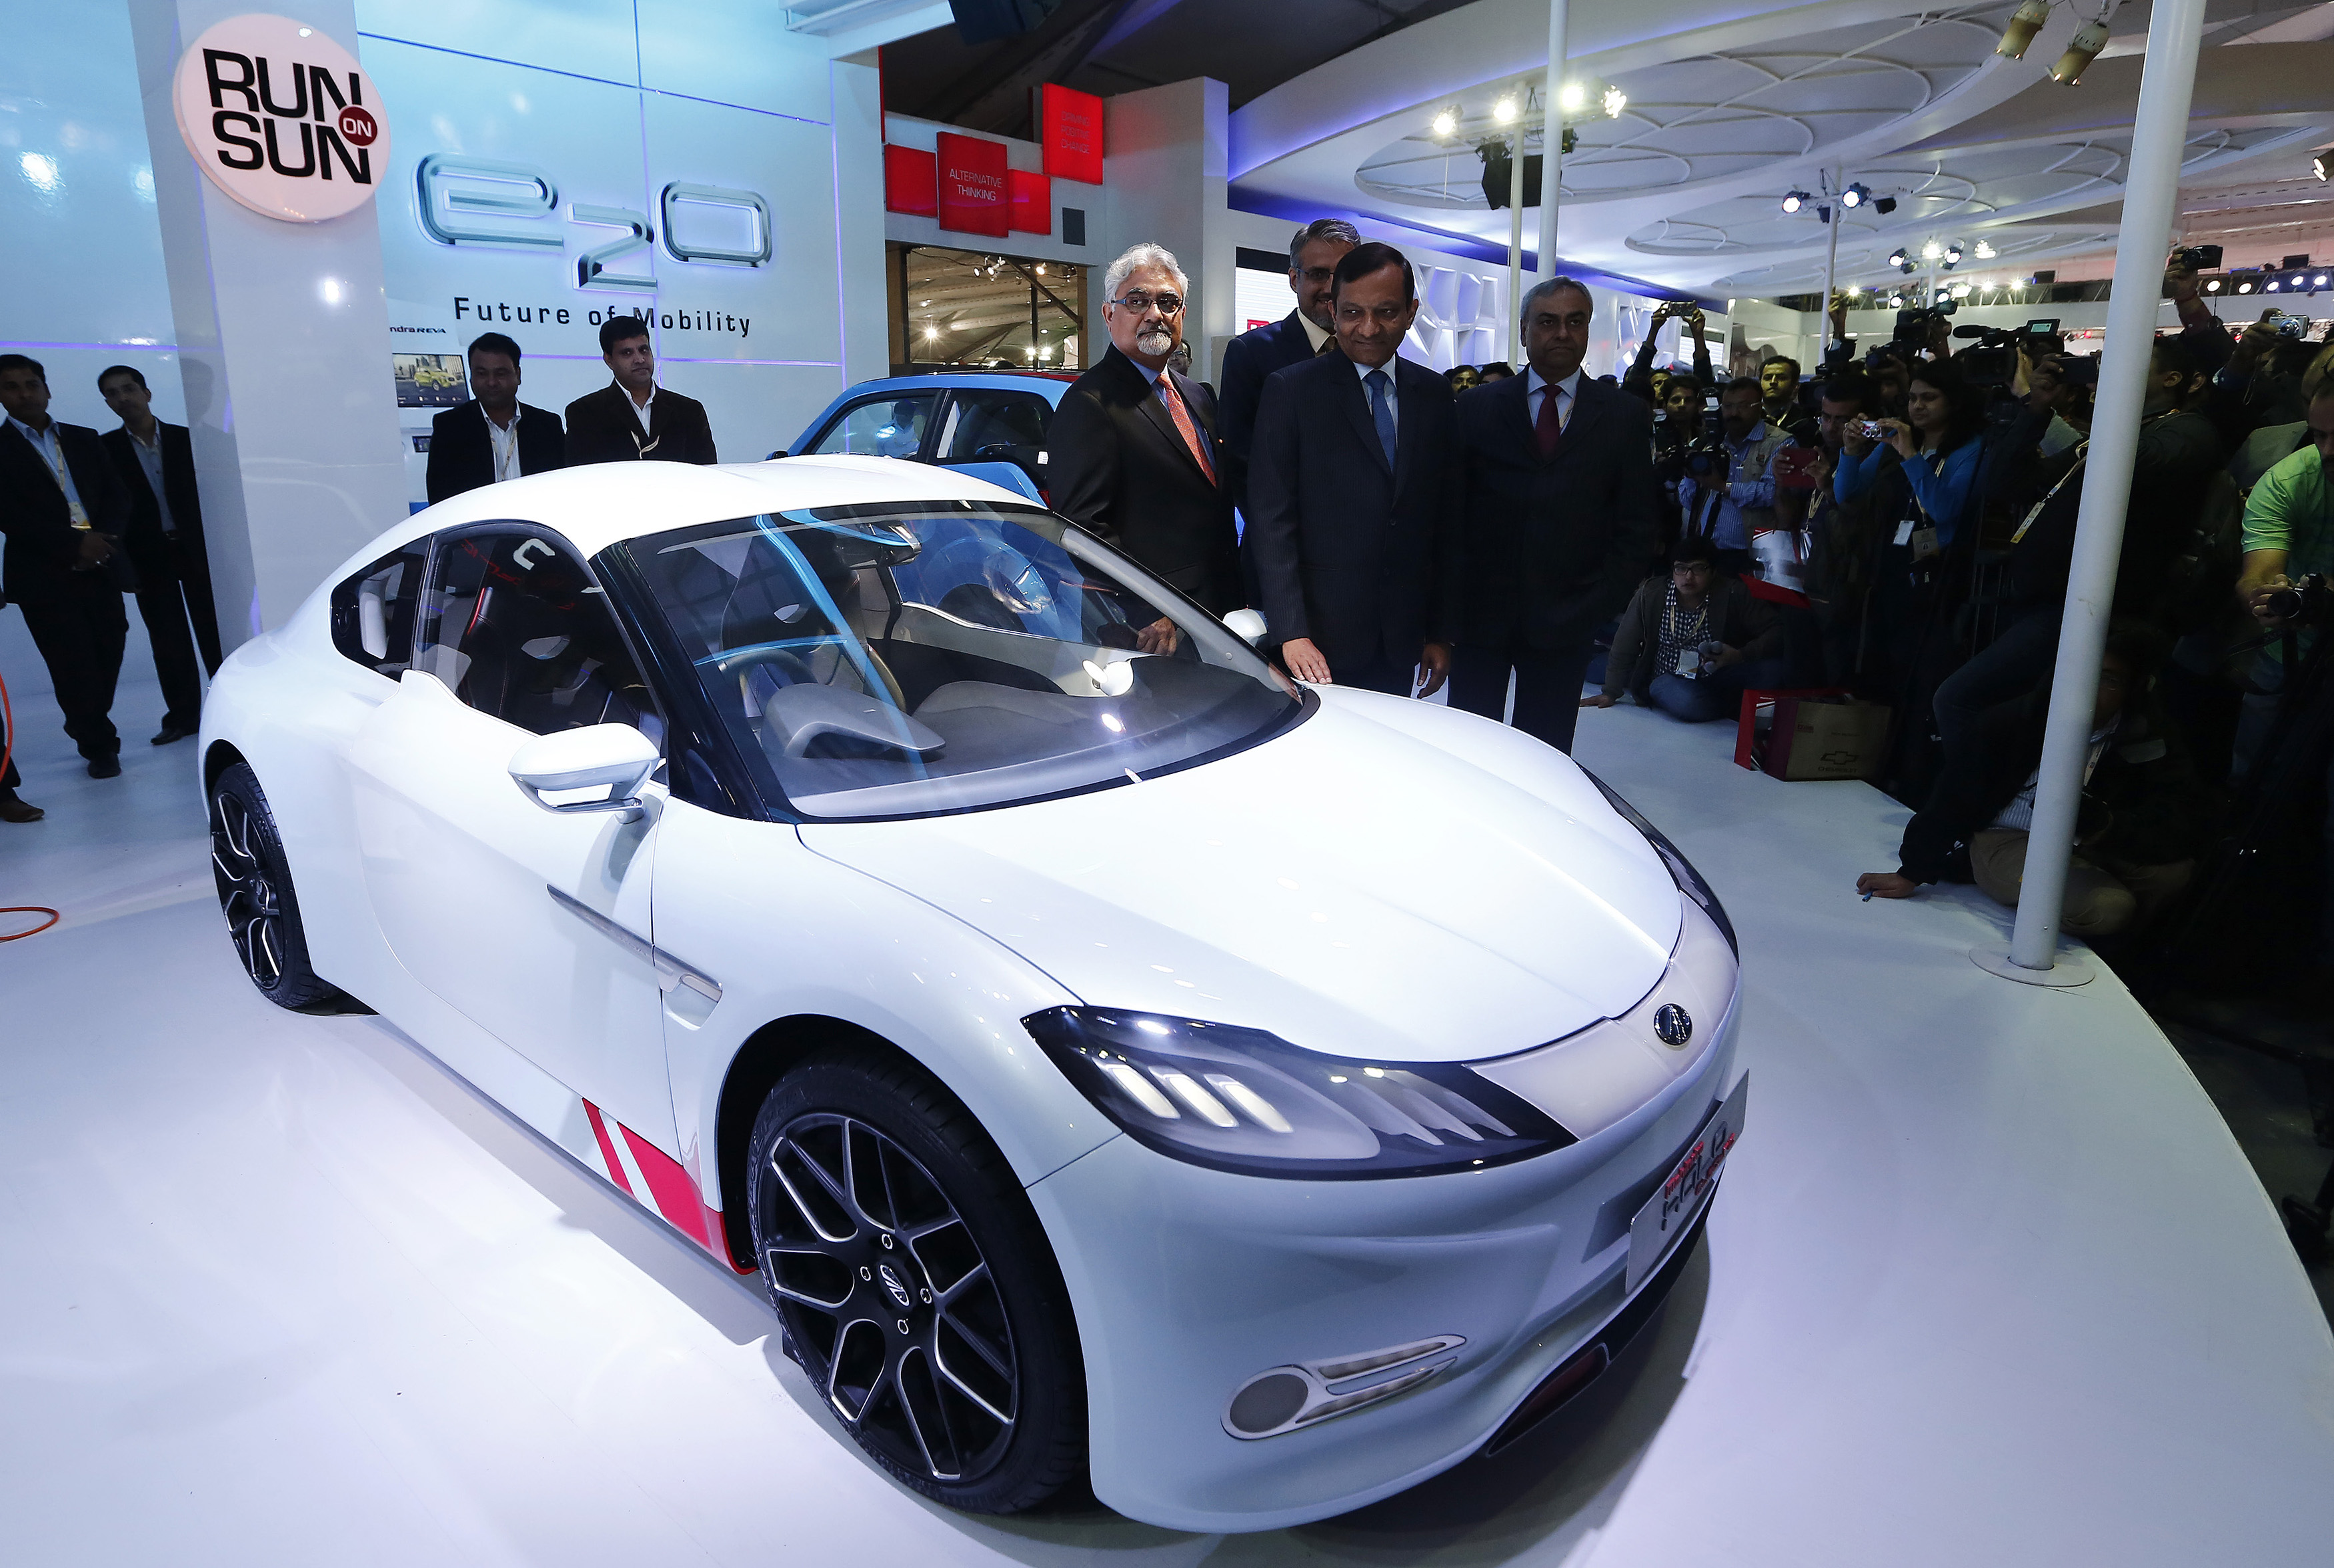 awan Goenka, president of Mahindra's automotive and farm equipment sectors, stands next to Mahindra's concept electric sports car 'Halo' after its unveiling during the Indian Auto Expo in Greater Noida,